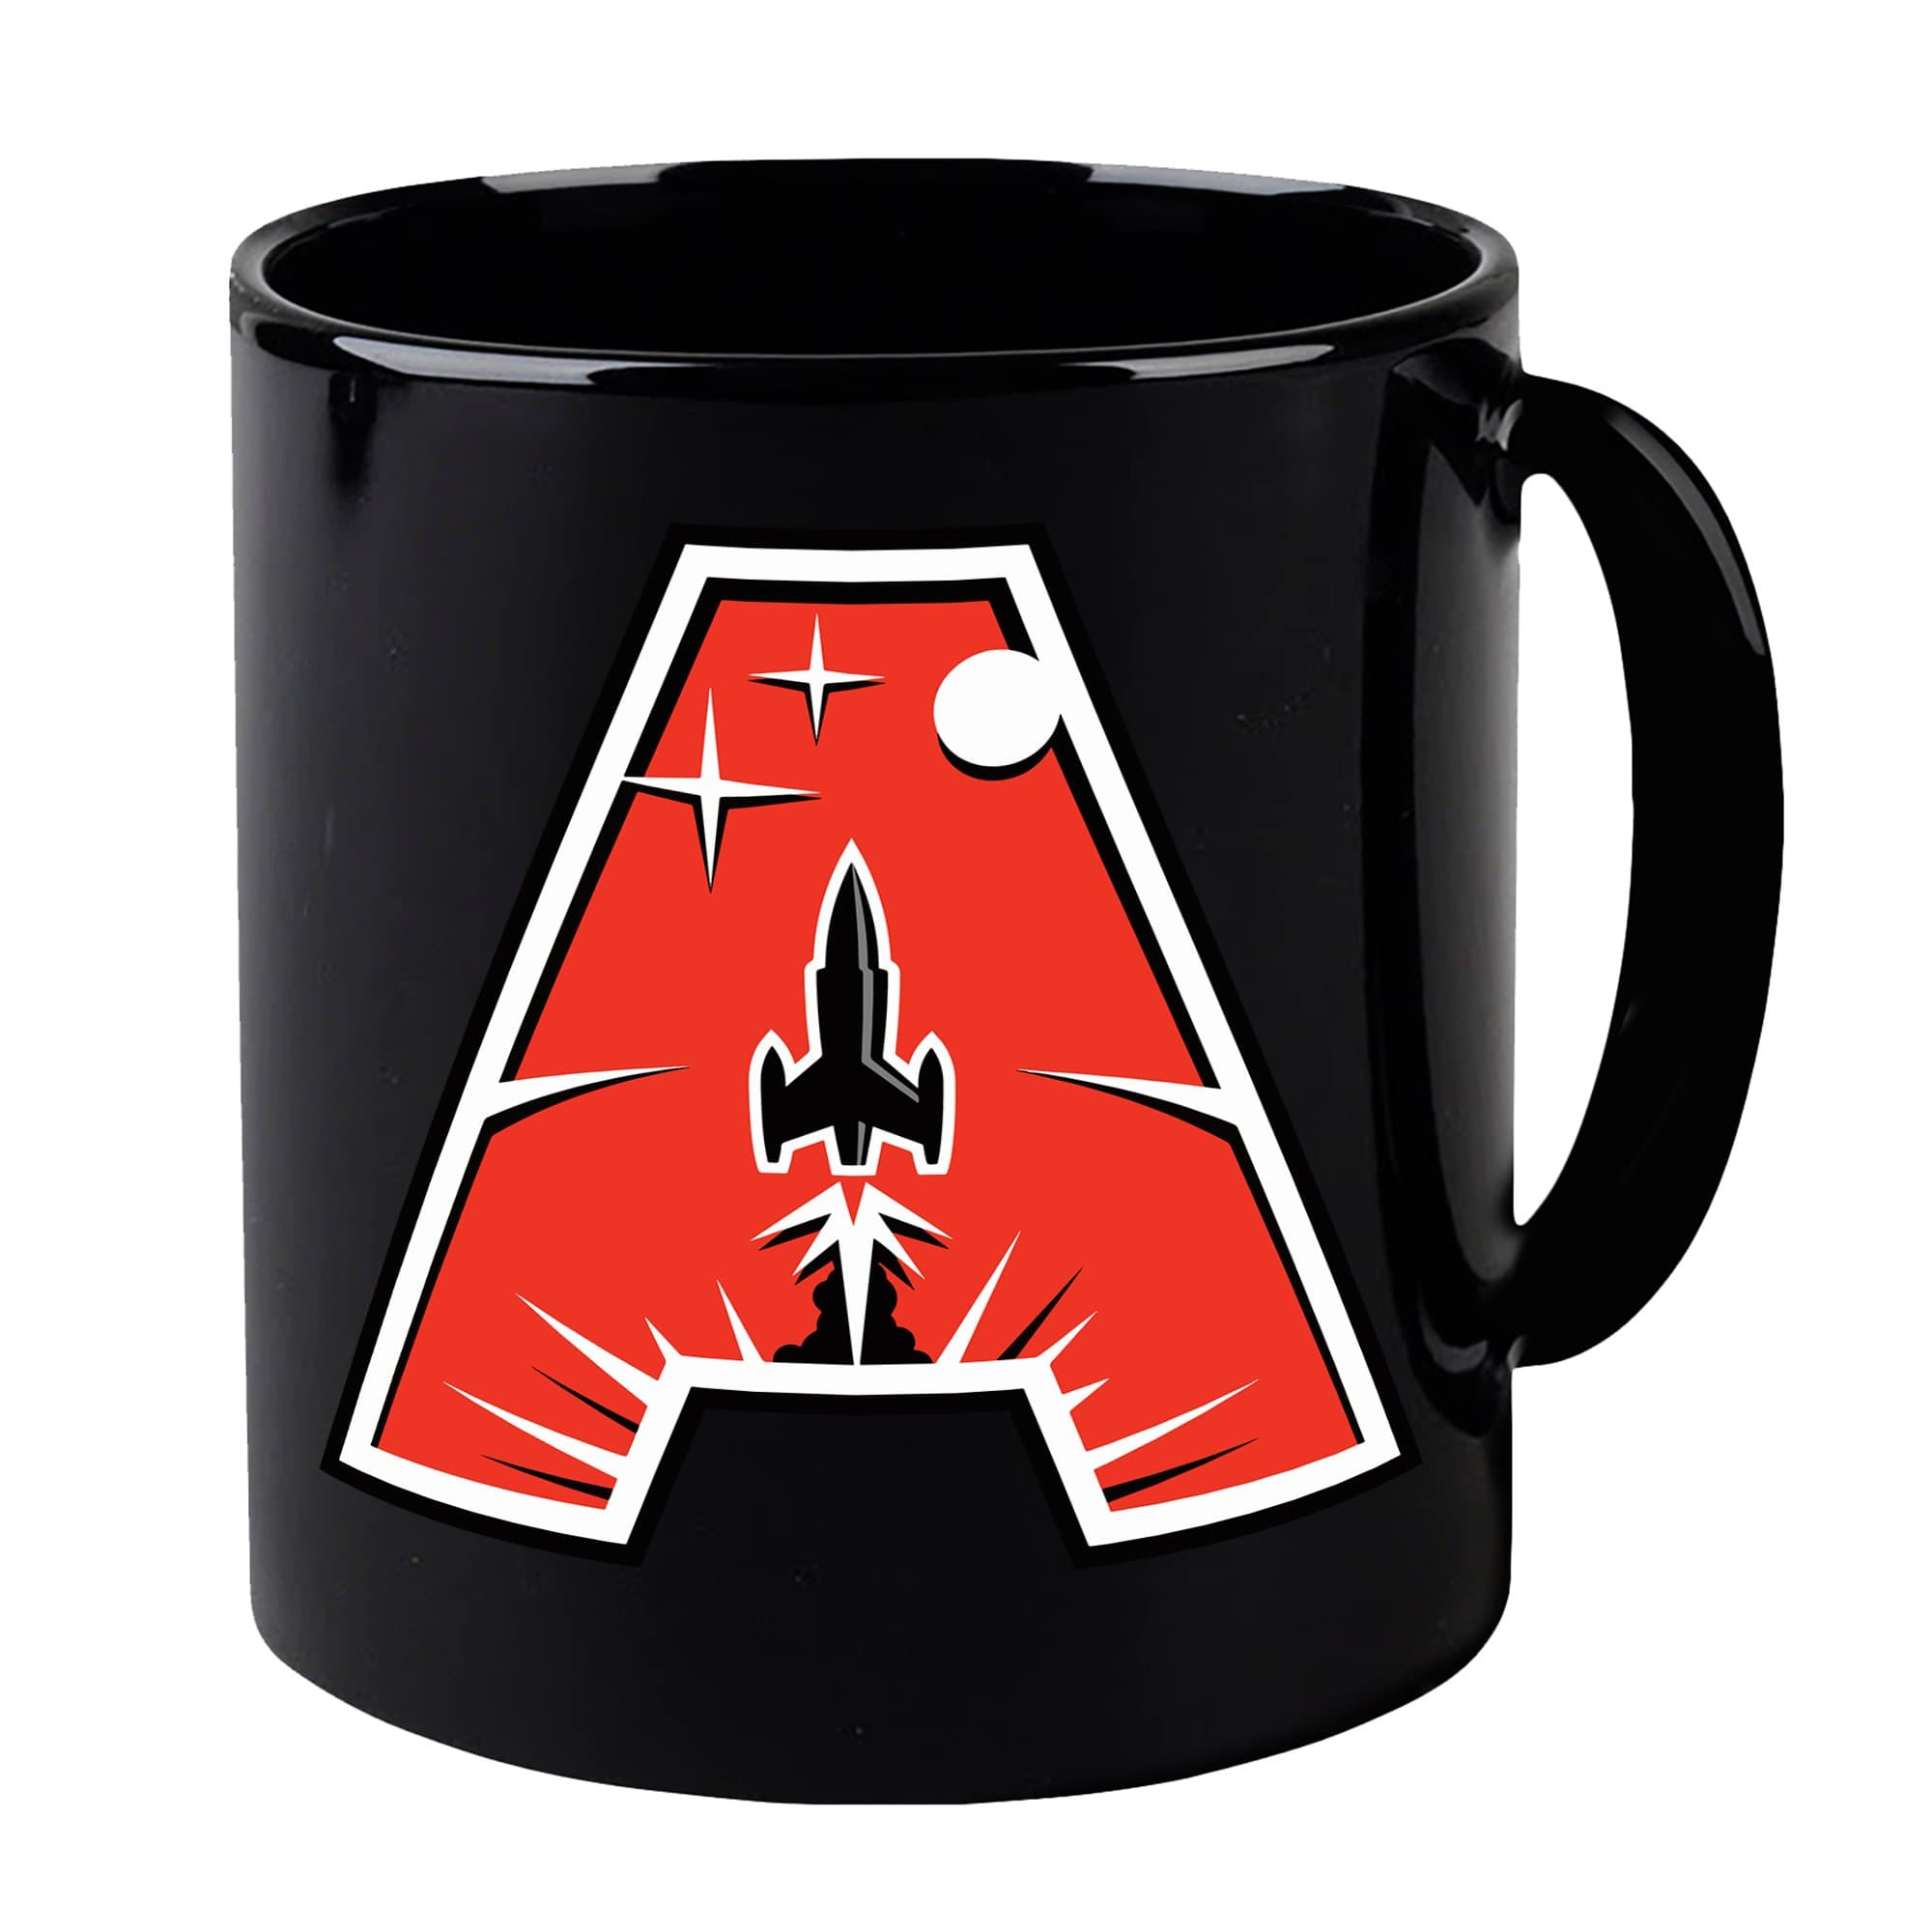 Gerry Anderson 'A' Logo Mug [Official & Exclusive] - The Gerry Anderson Store